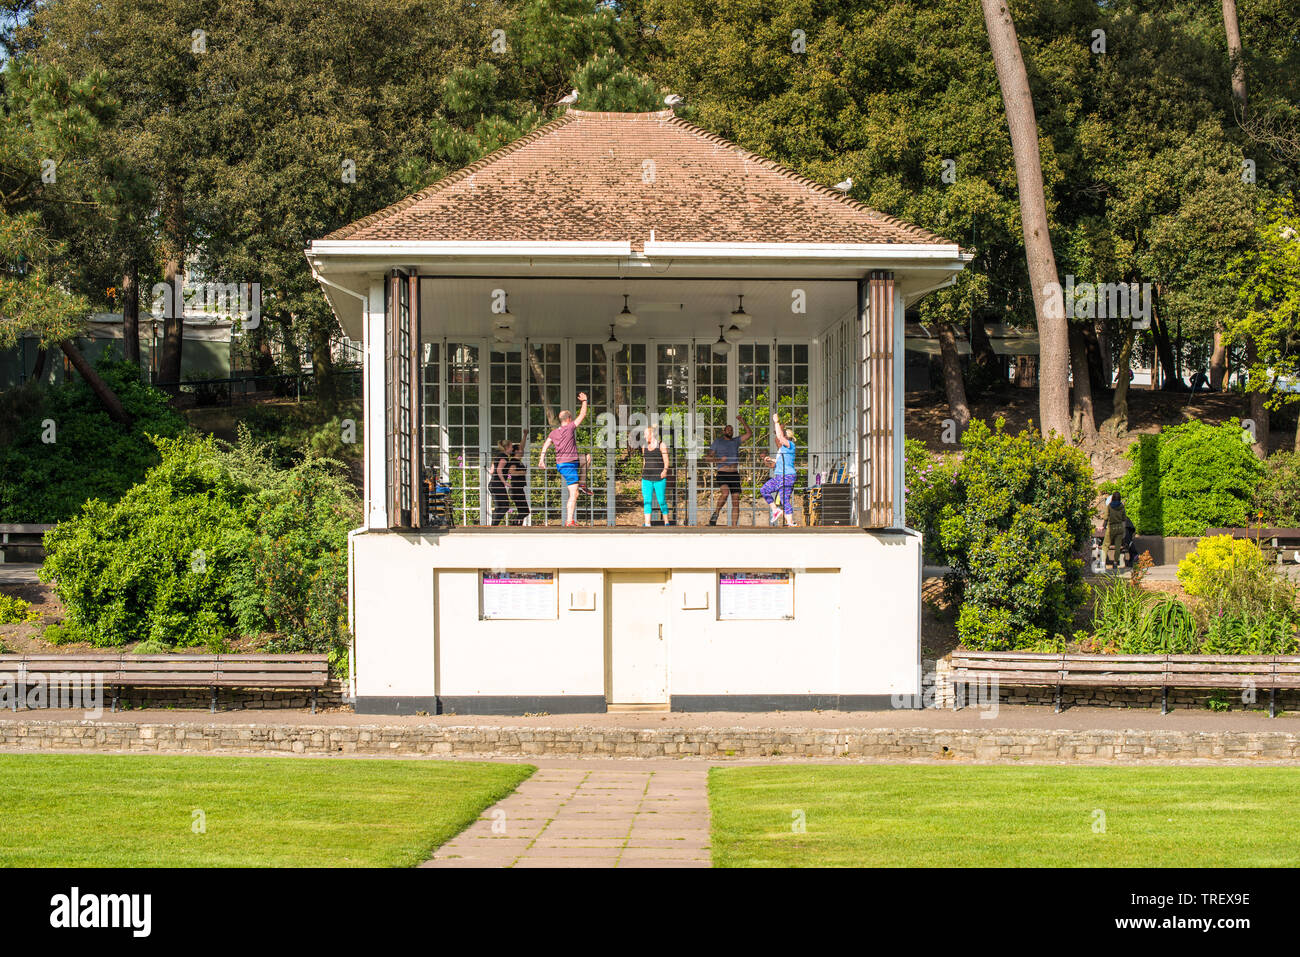 An aerobics class taking place in the Bandstand on the Lower Gardens in Bournemouth, Dorset, England, UK. - Stock Image